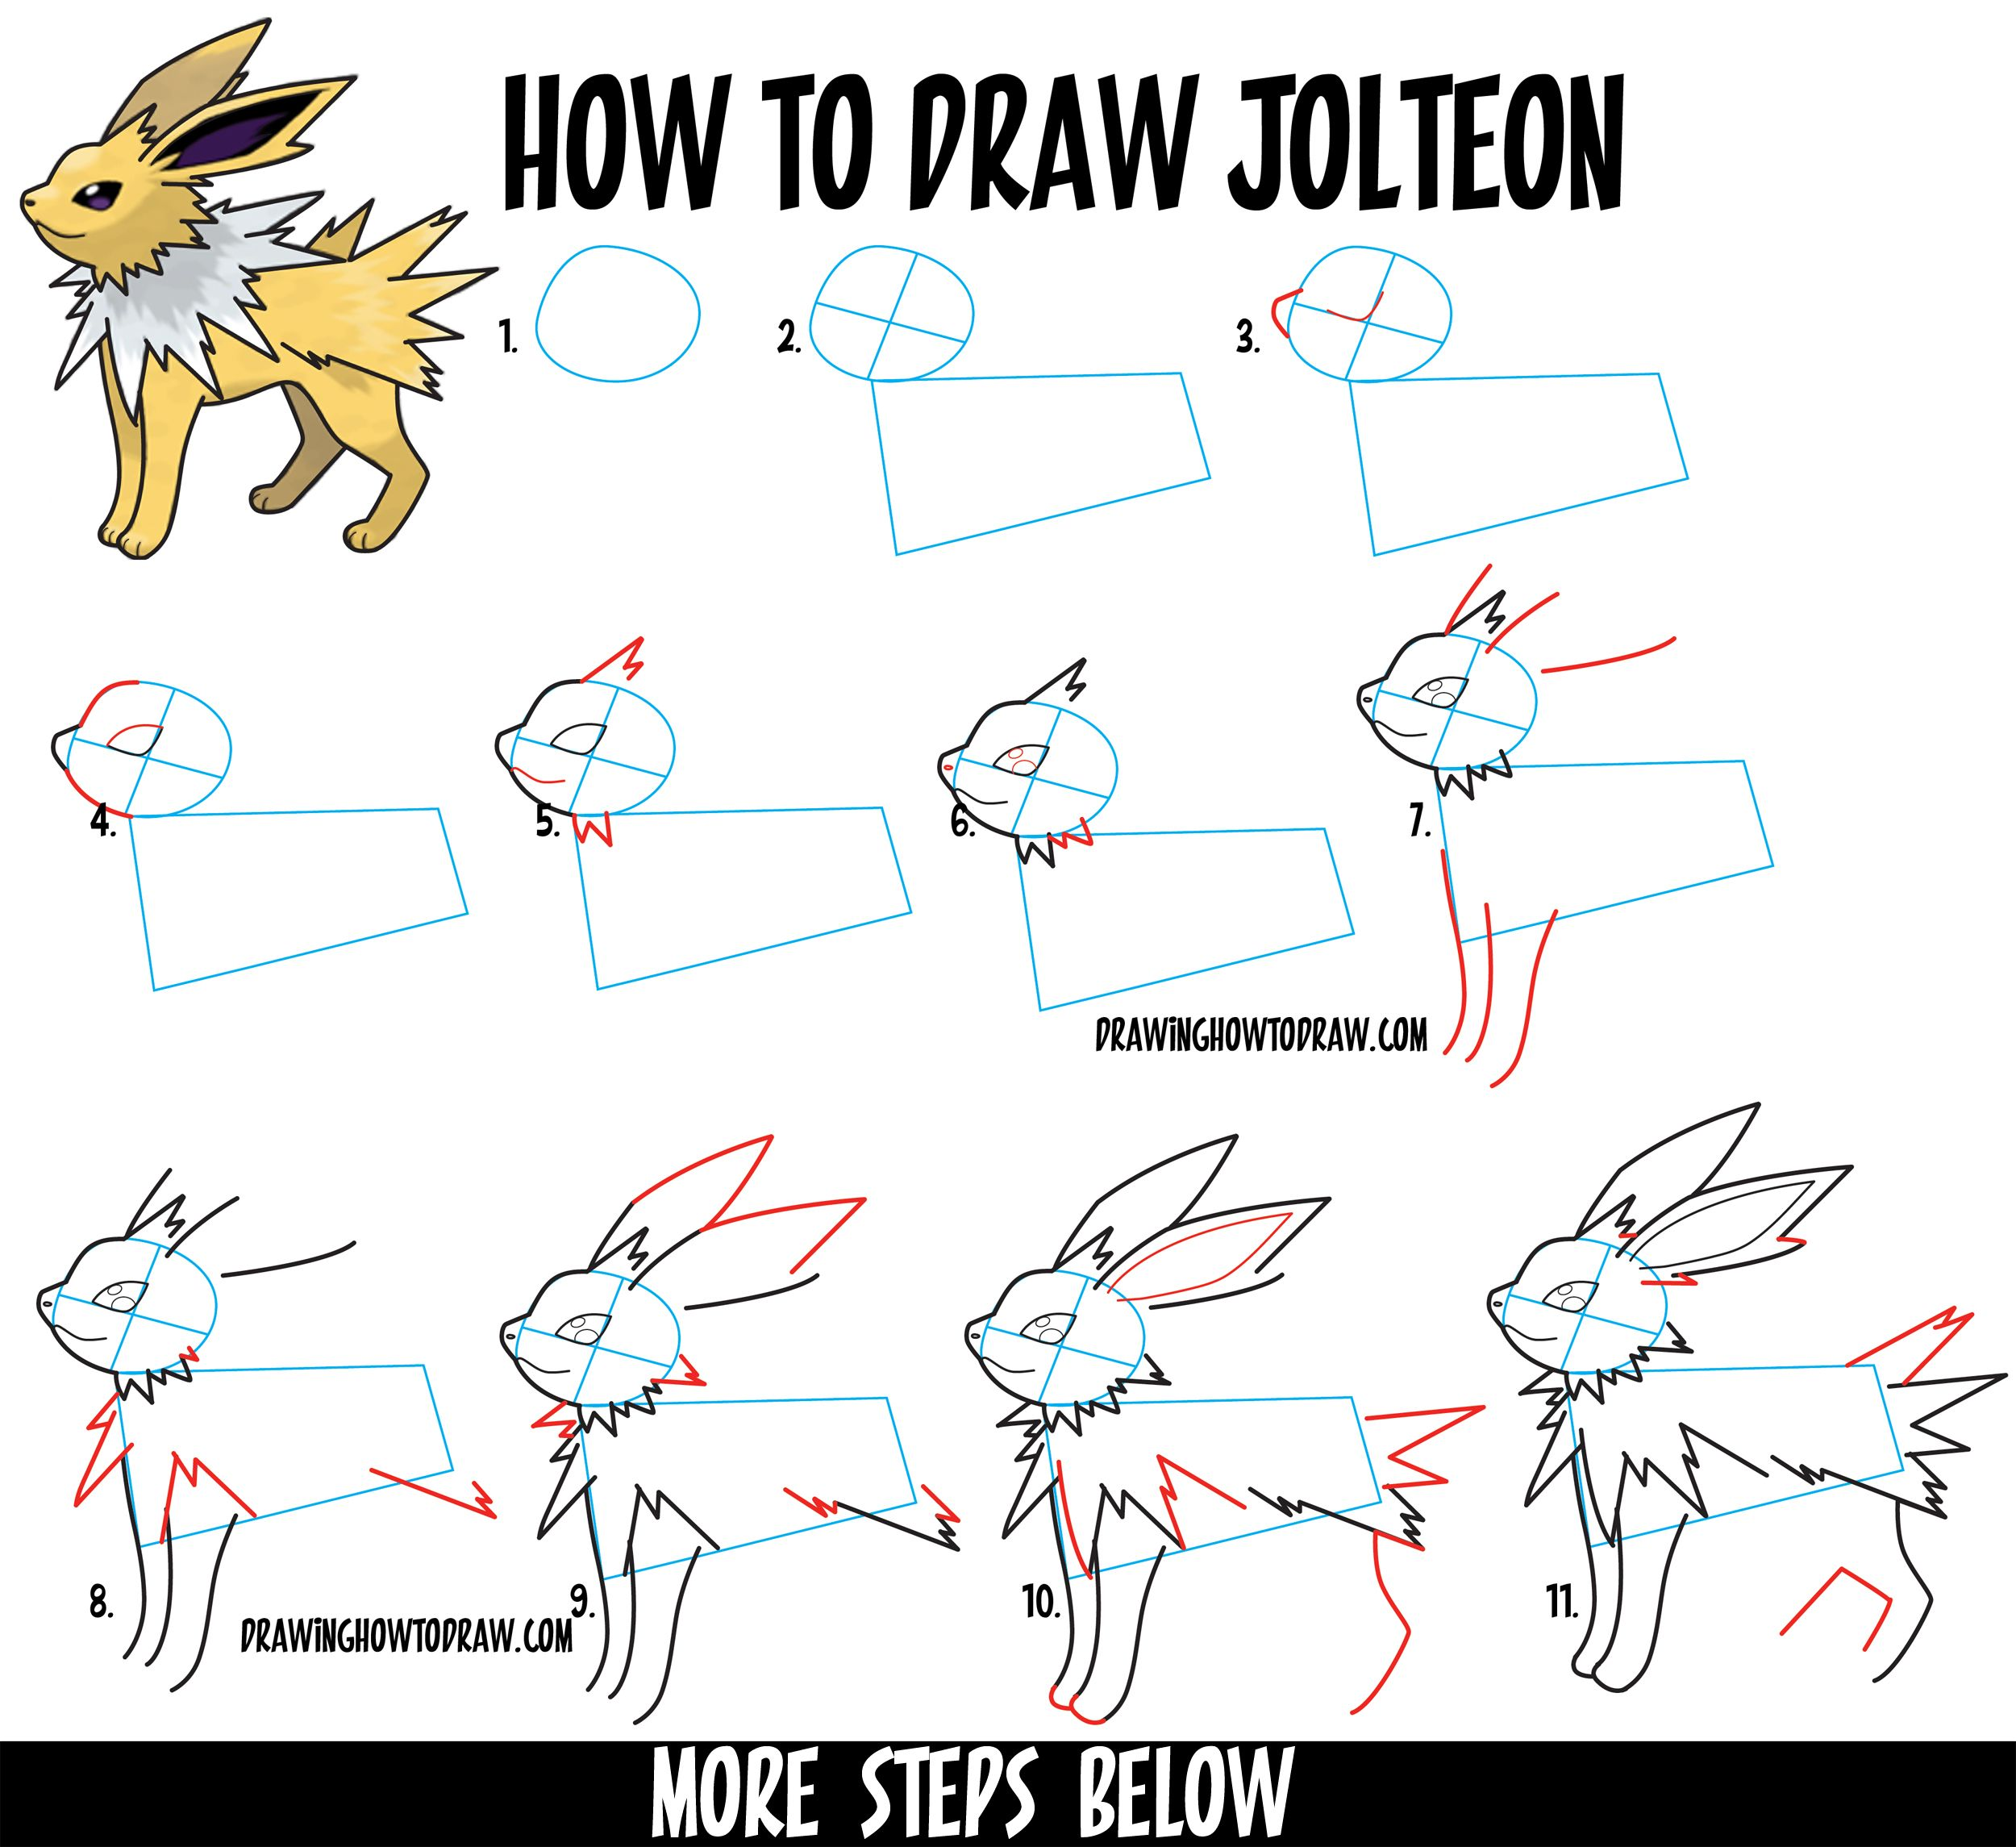 Uncategorized Learn Drawing For Kids Step By Step how to draw jolteon from pokemon in easy step by drawing tutorial for kids